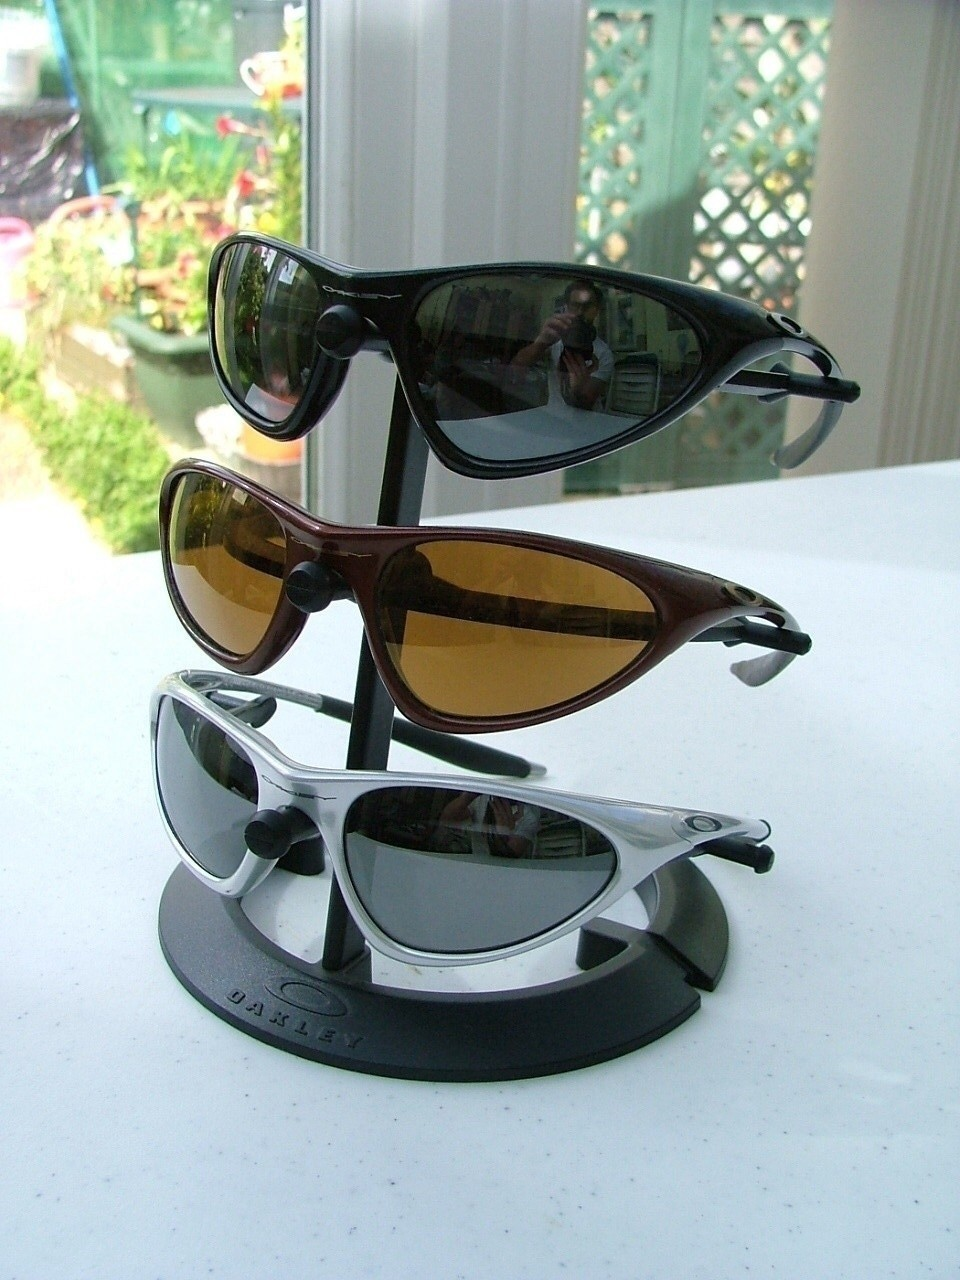 My Oakley Topcoat collection so far......